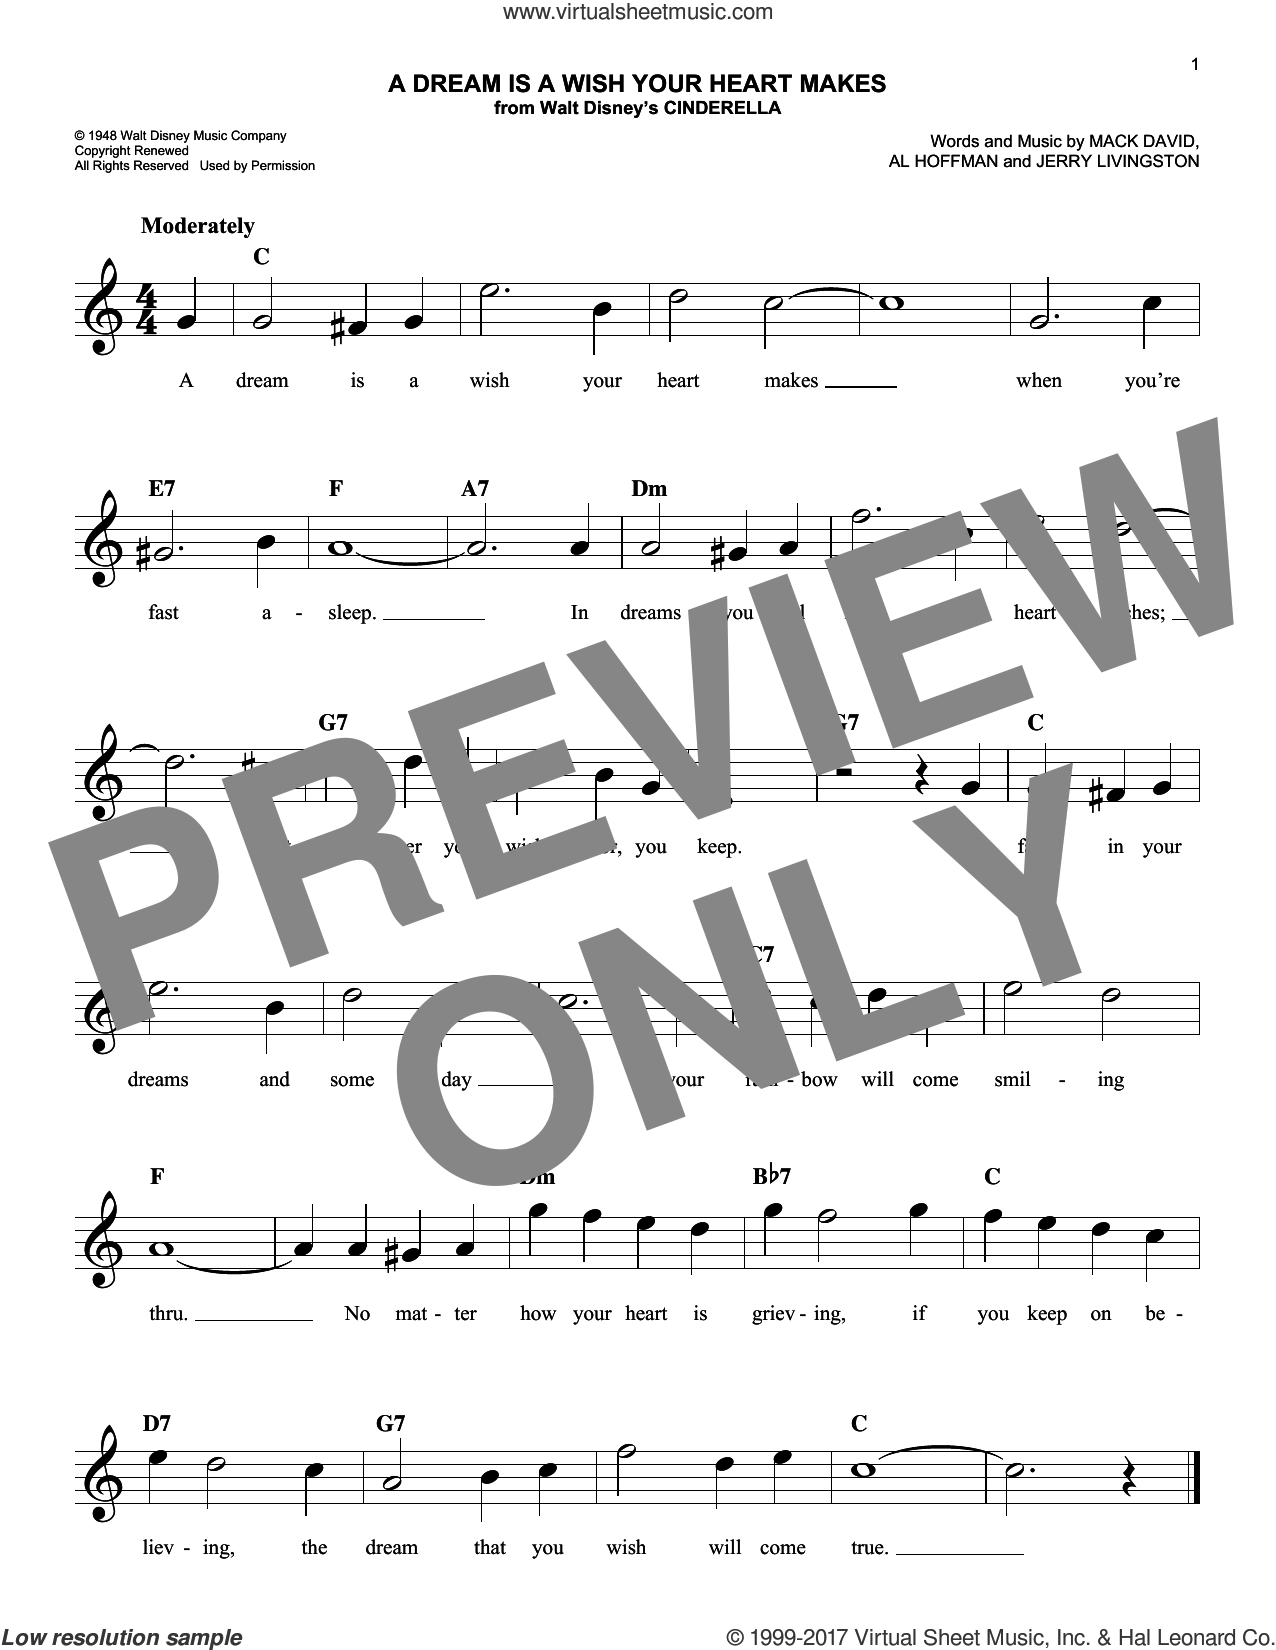 A Dream Is A Wish Your Heart Makes sheet music for voice and other instruments (fake book) by Al Hoffman, Linda Ronstadt, Jerry Livingston and Mack David, intermediate skill level